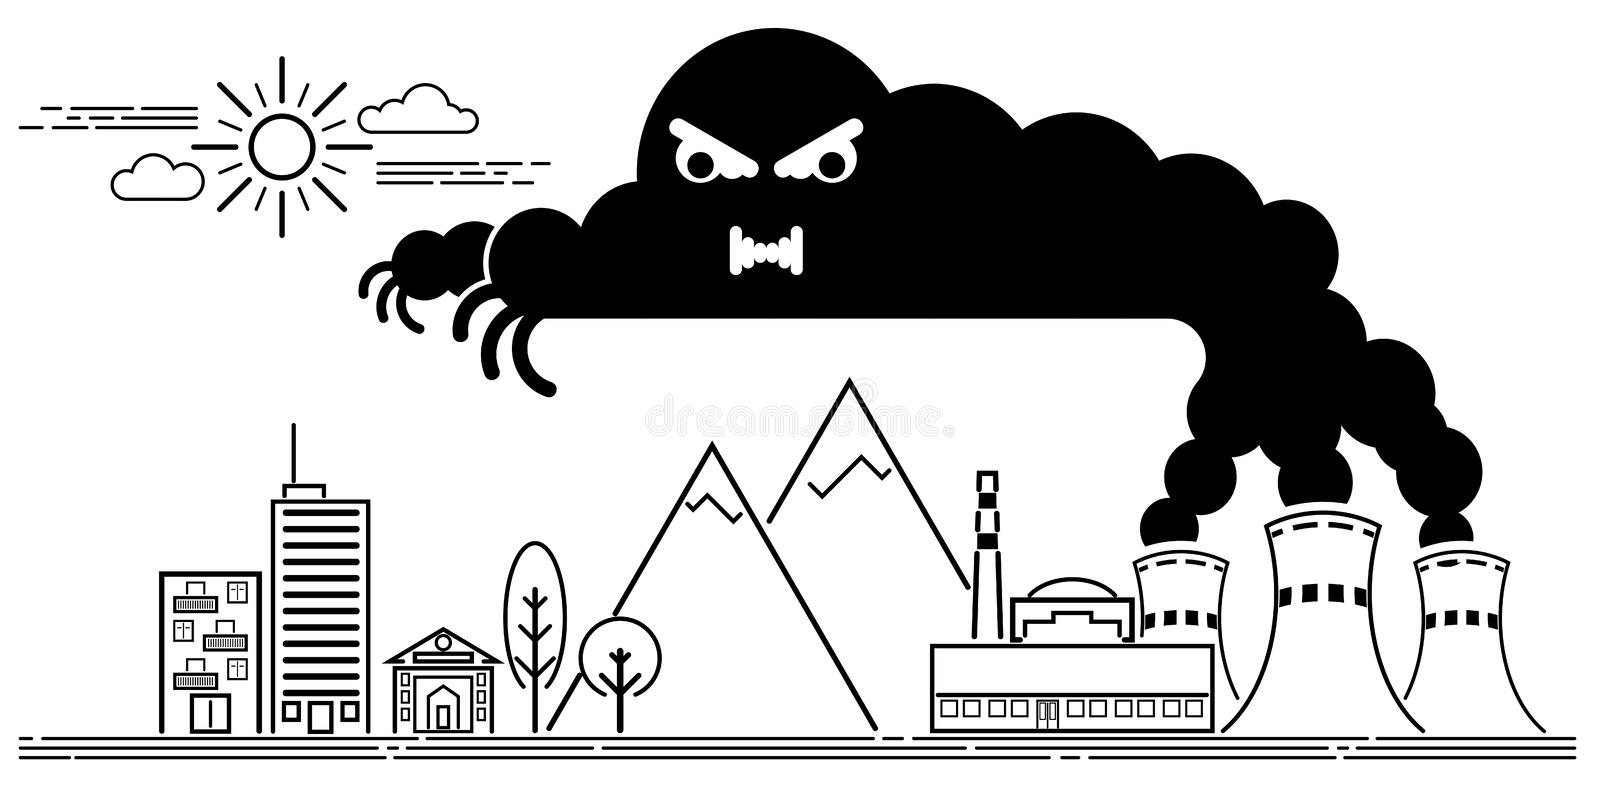 Art line Vector illustration of the dangers of nuclear power pla royalty free illustration